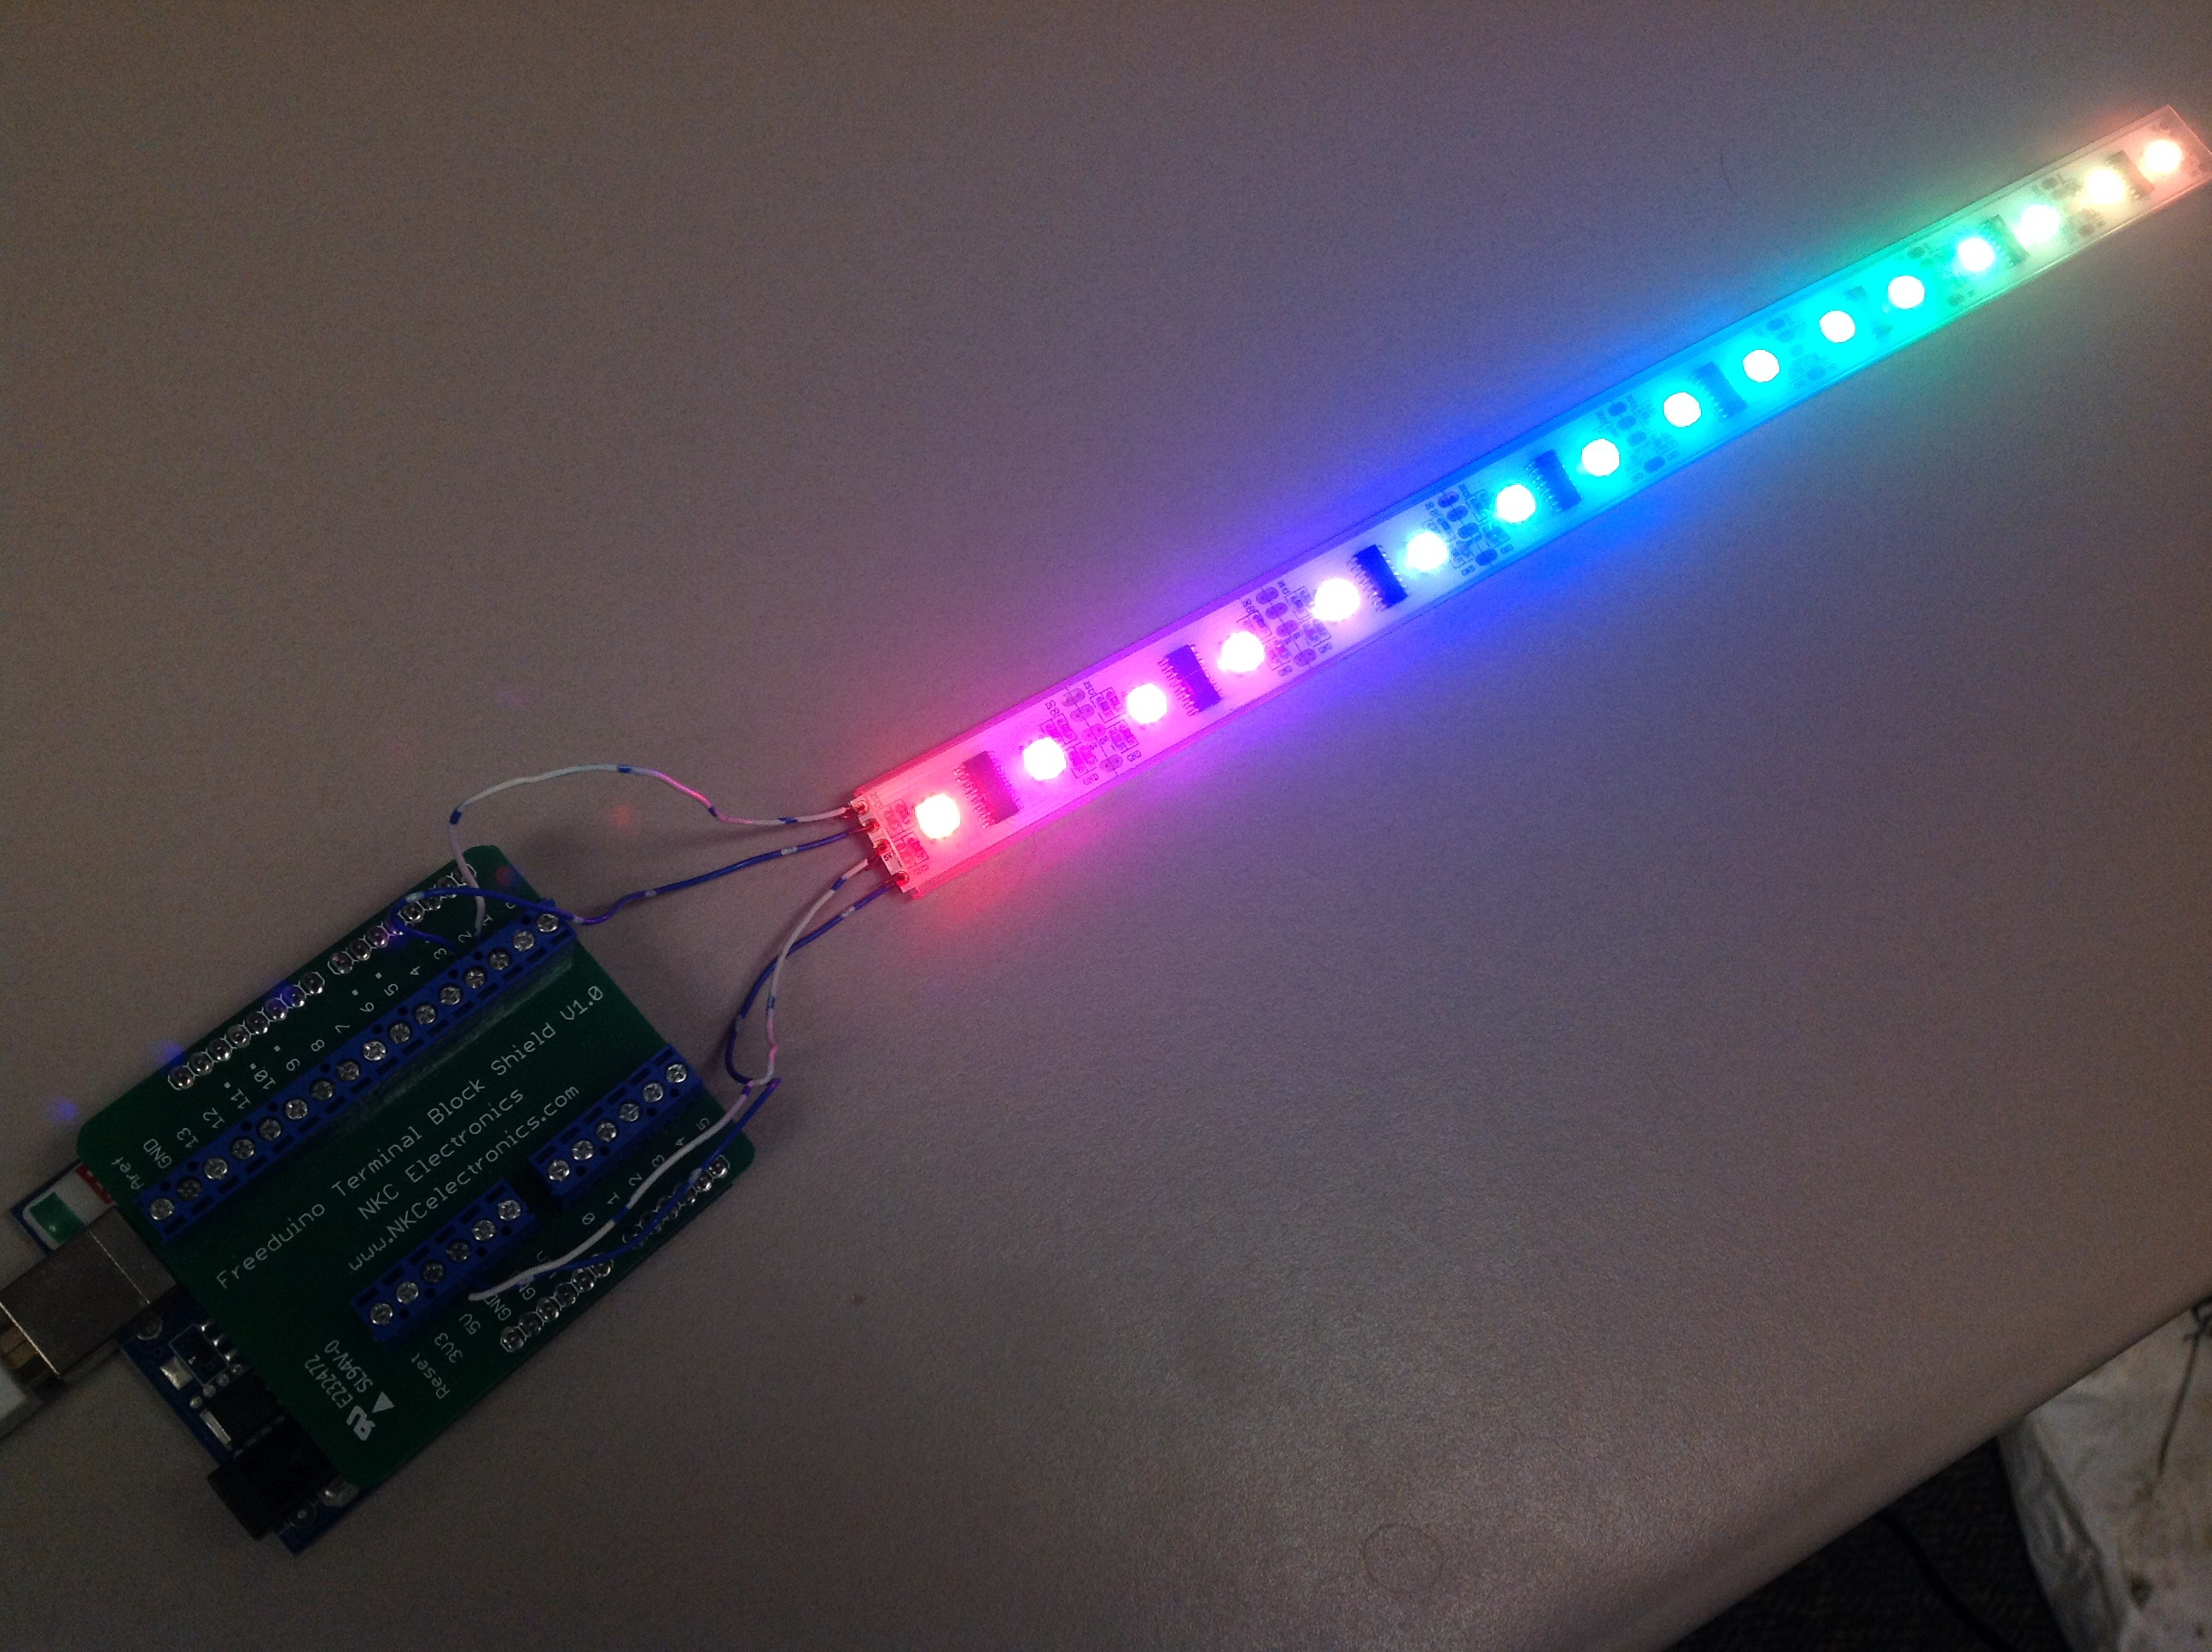 microcontroller - Rotating POV LED Cylinder Using